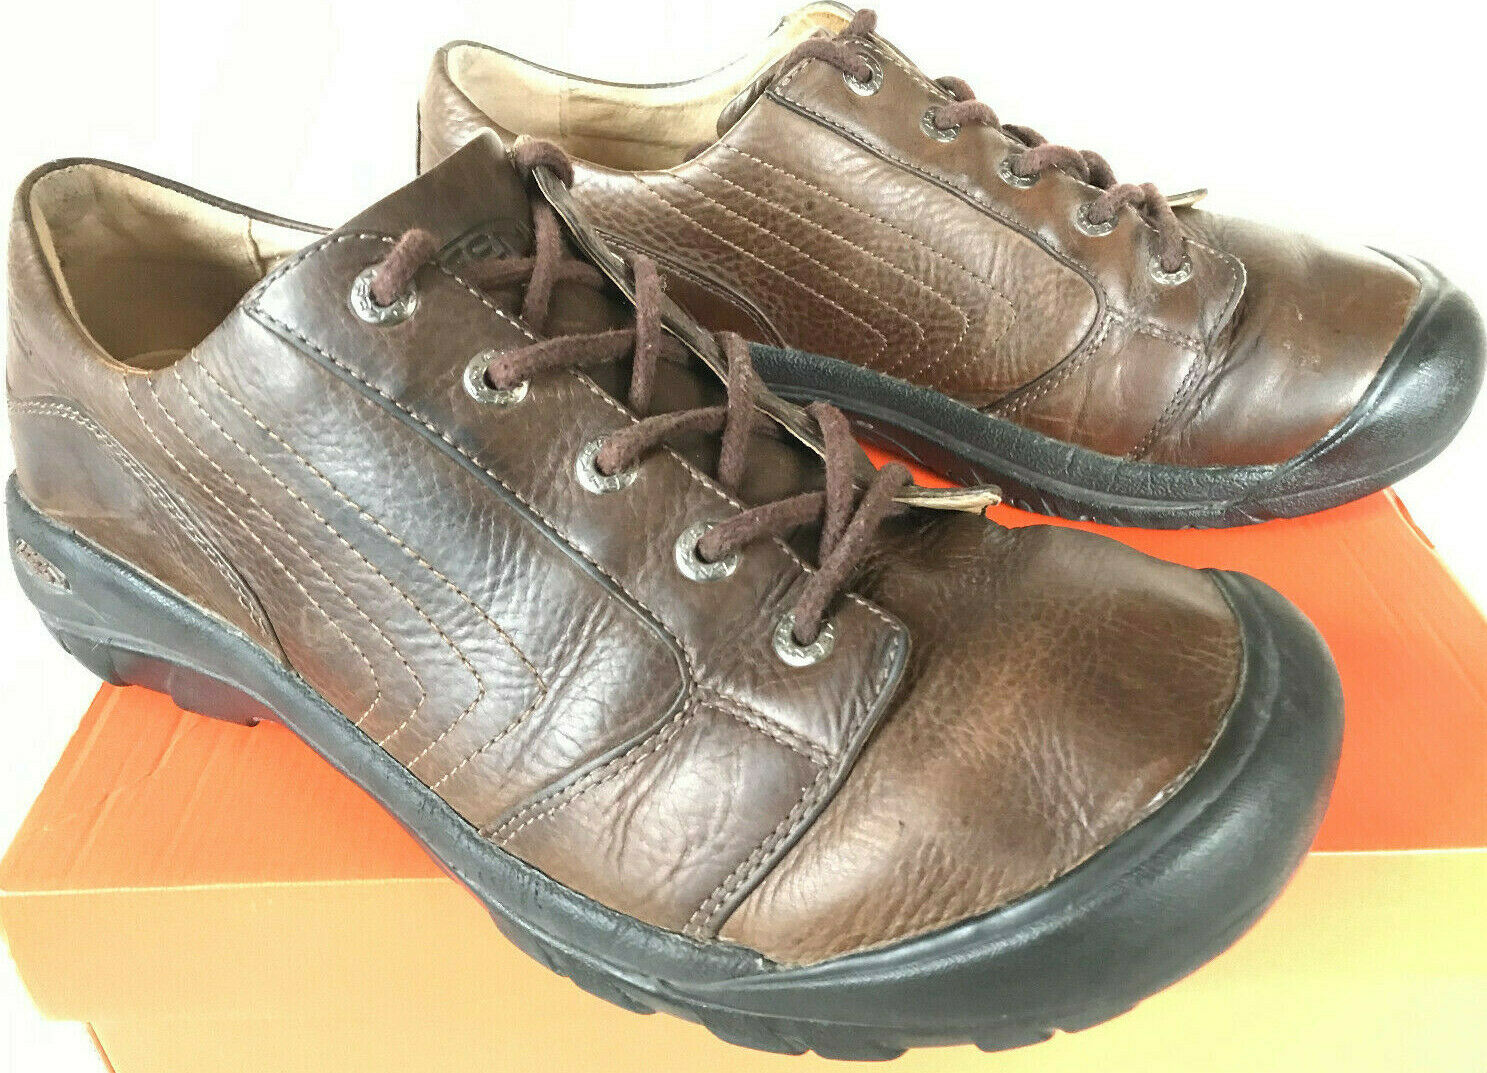 KEEN Alki Lace Shitake 13008 Brown Leather Comfort Lace-Up Oxford shoes Men's 12